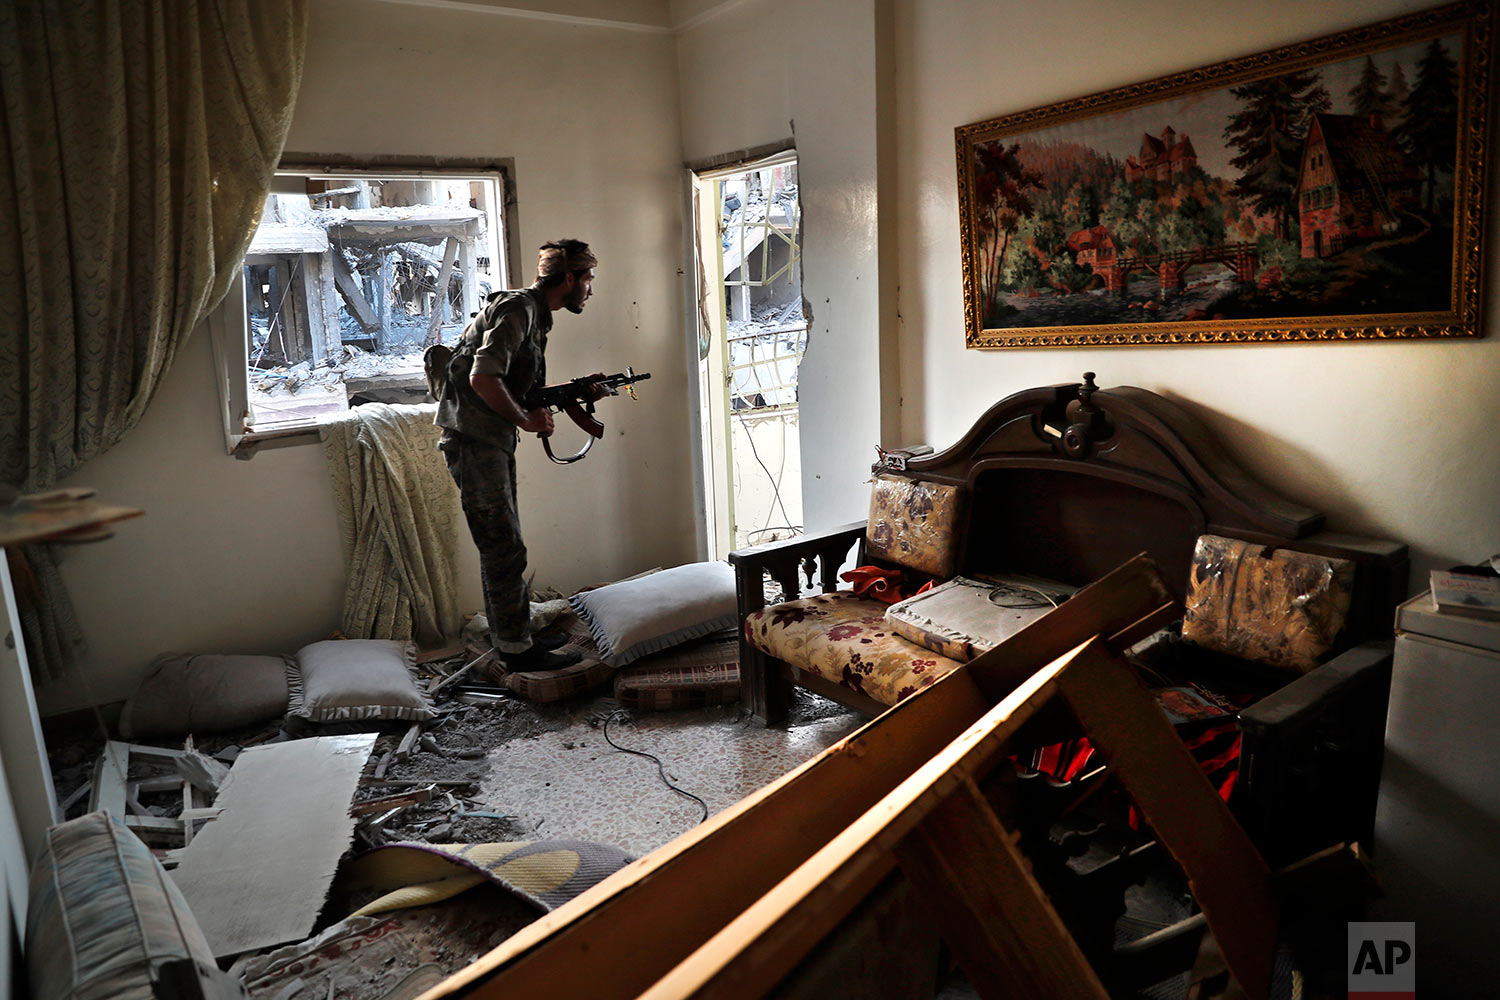 A U.S.-backed Syrian Democratic Forces fighter, looks through a window as he takes his position inside a destroyed apartment on the front line, in Raqqa city, northeast Syria, Thursday, July 27, 2017. (AP Photo/Hussein Malla)